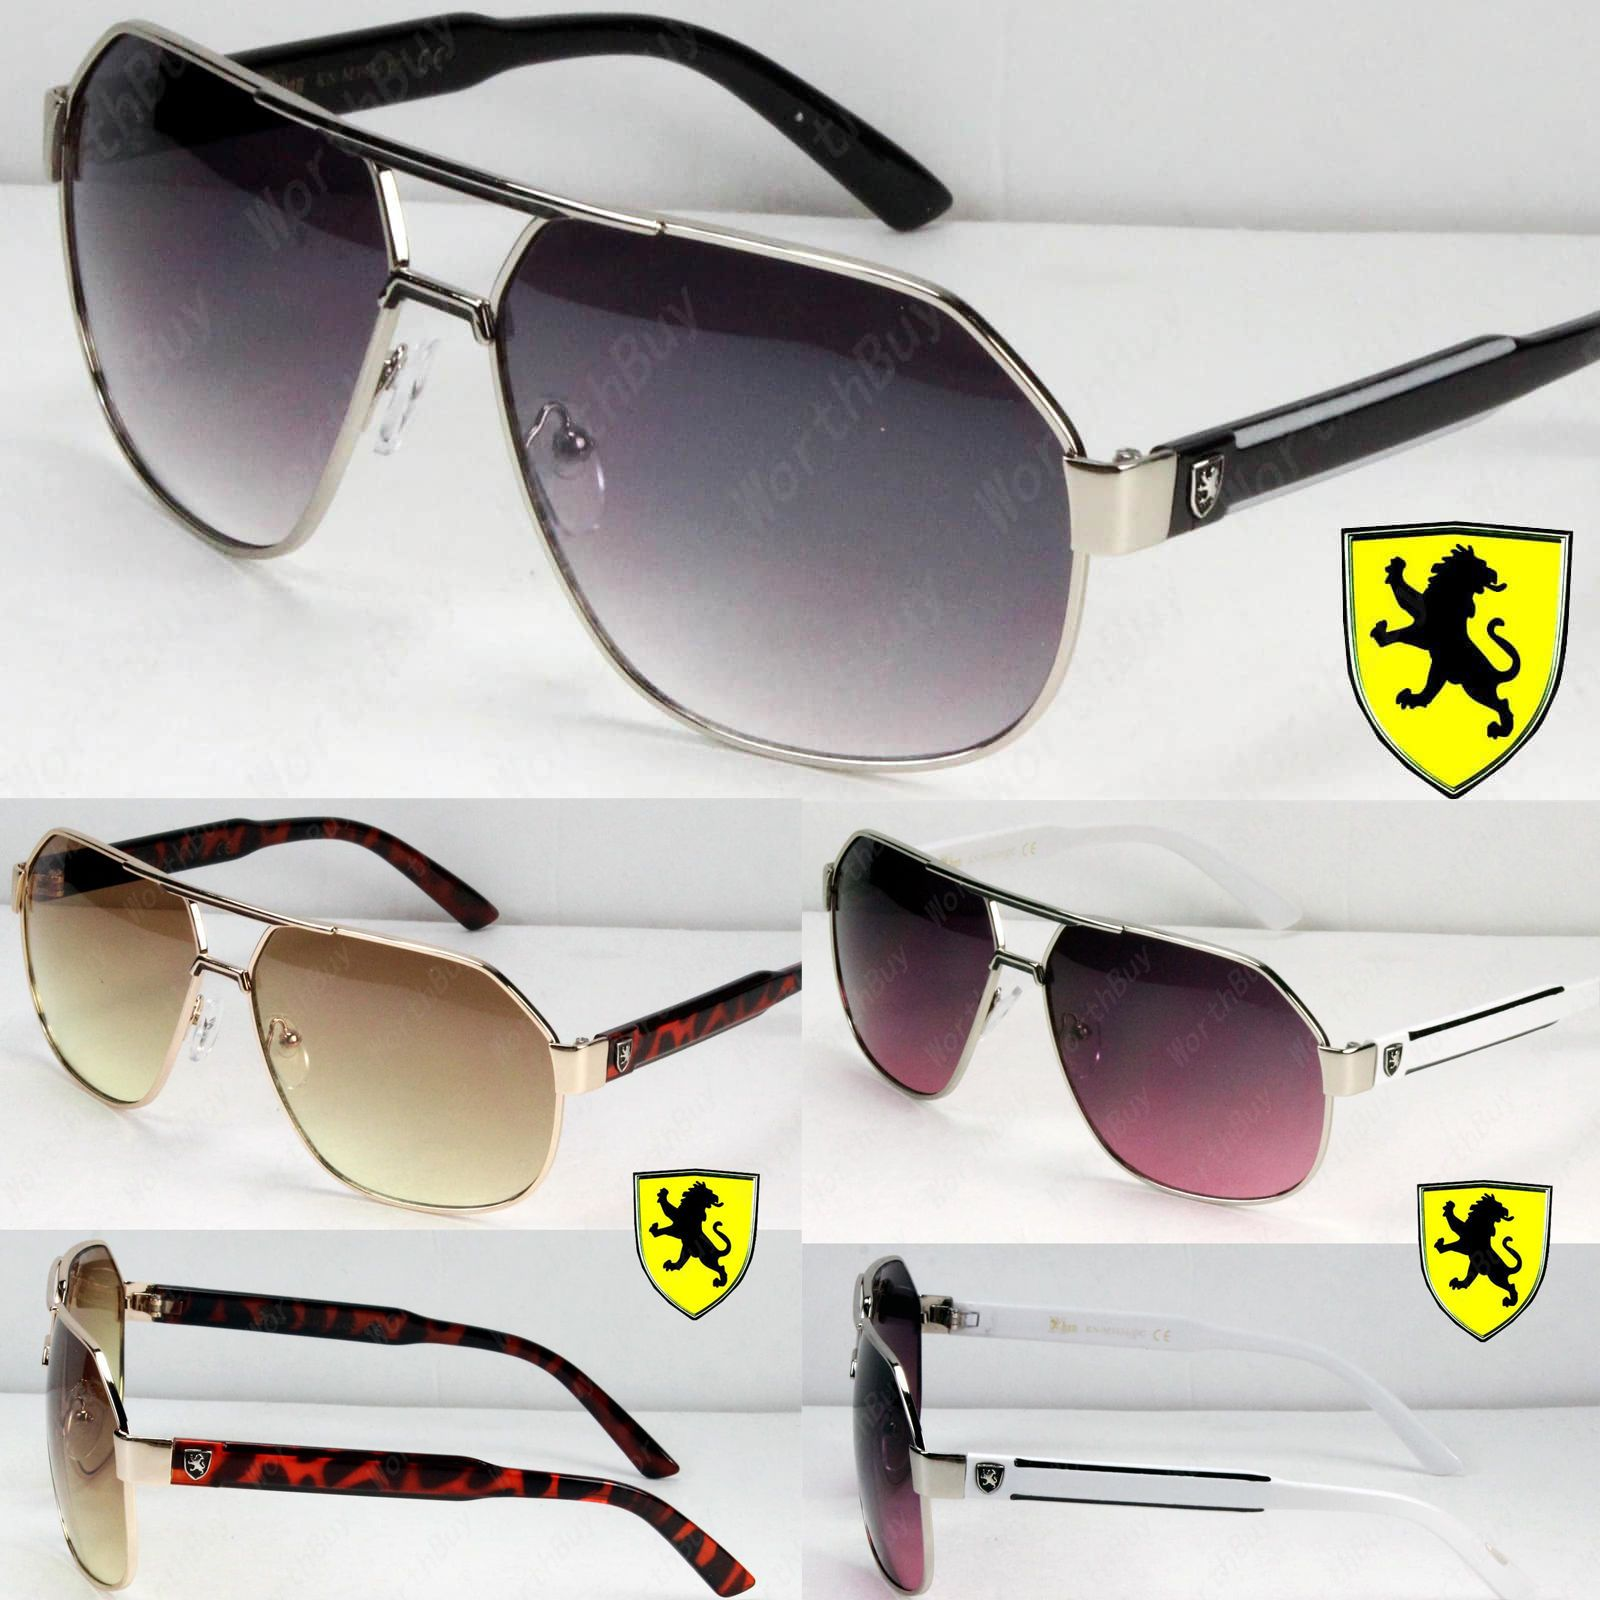 21ba84a4fdbe New Khan Mens Womens Designer Fashion Sunglasses Shades Metal Pilot Retro  Lion Item specifics Condition  New with tags  A brand-new unused and unworn  item ...